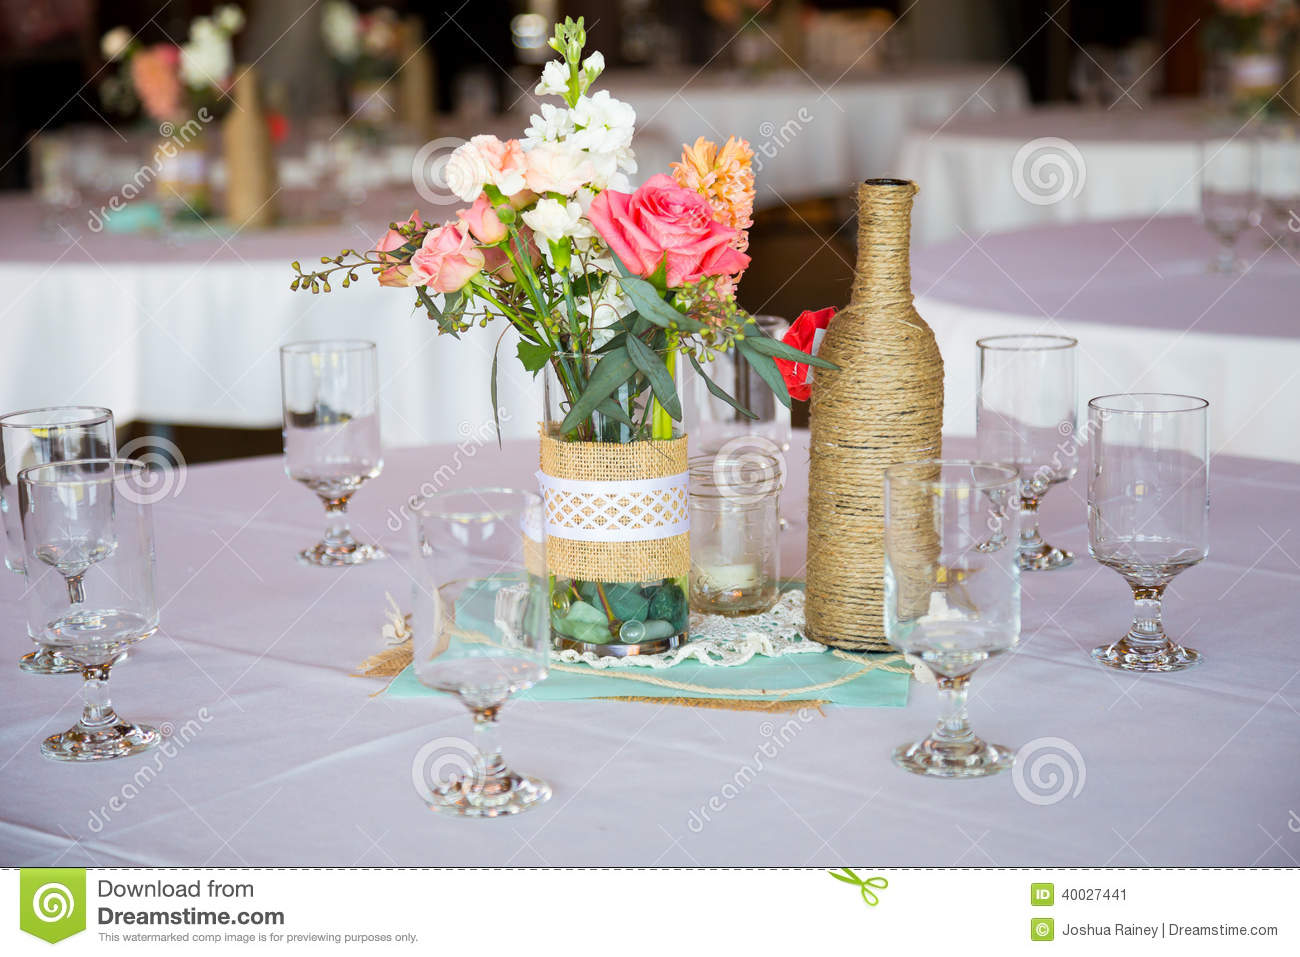 Wedding reception table centerpieces stock photo image for Diy wedding table decorations